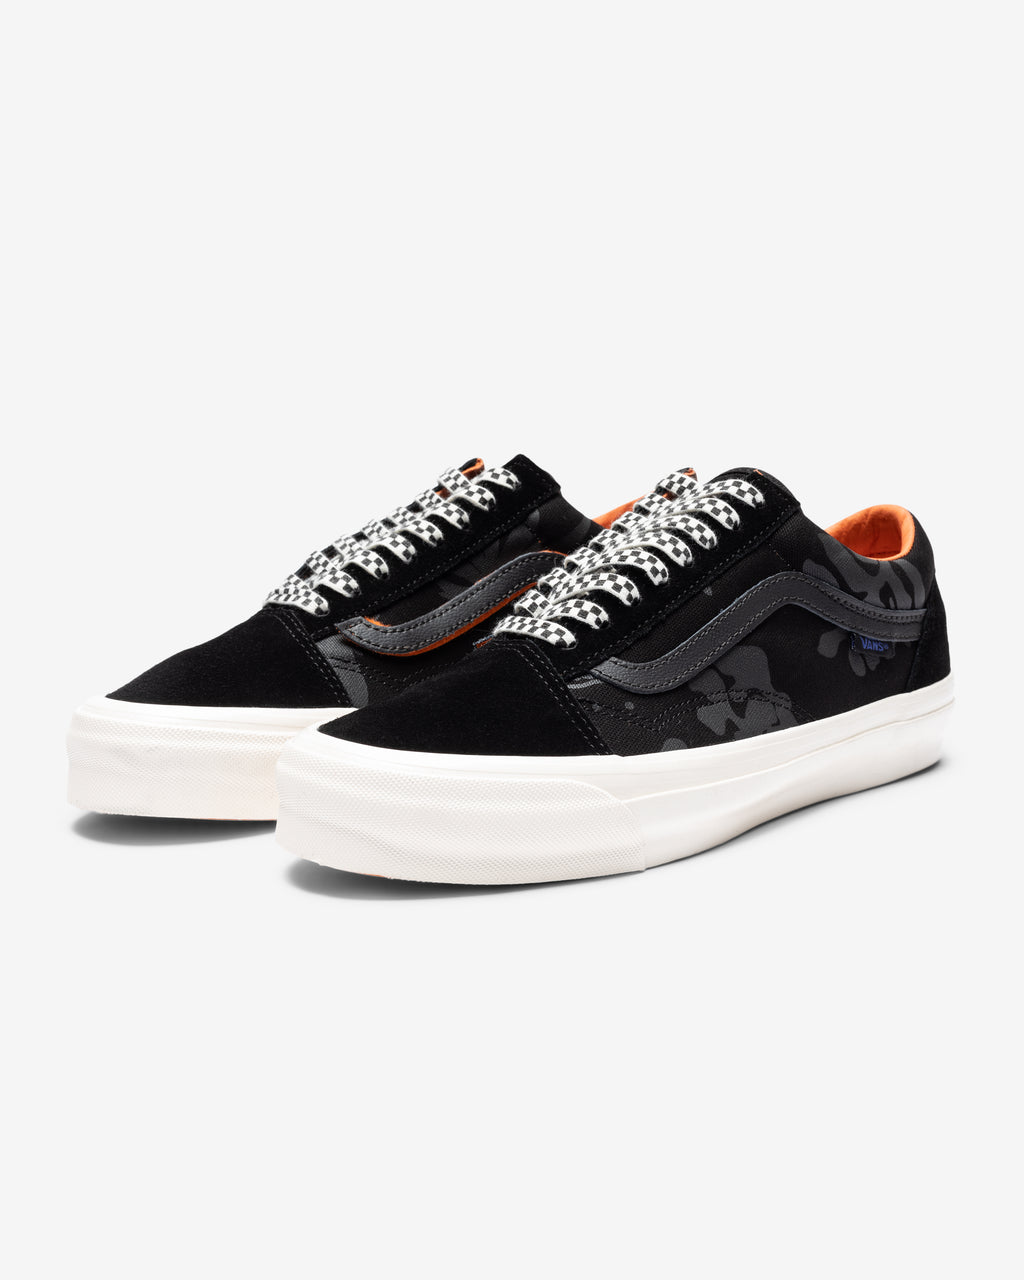 VANS X PORTER OG OLD SKOOL LX - BLACK